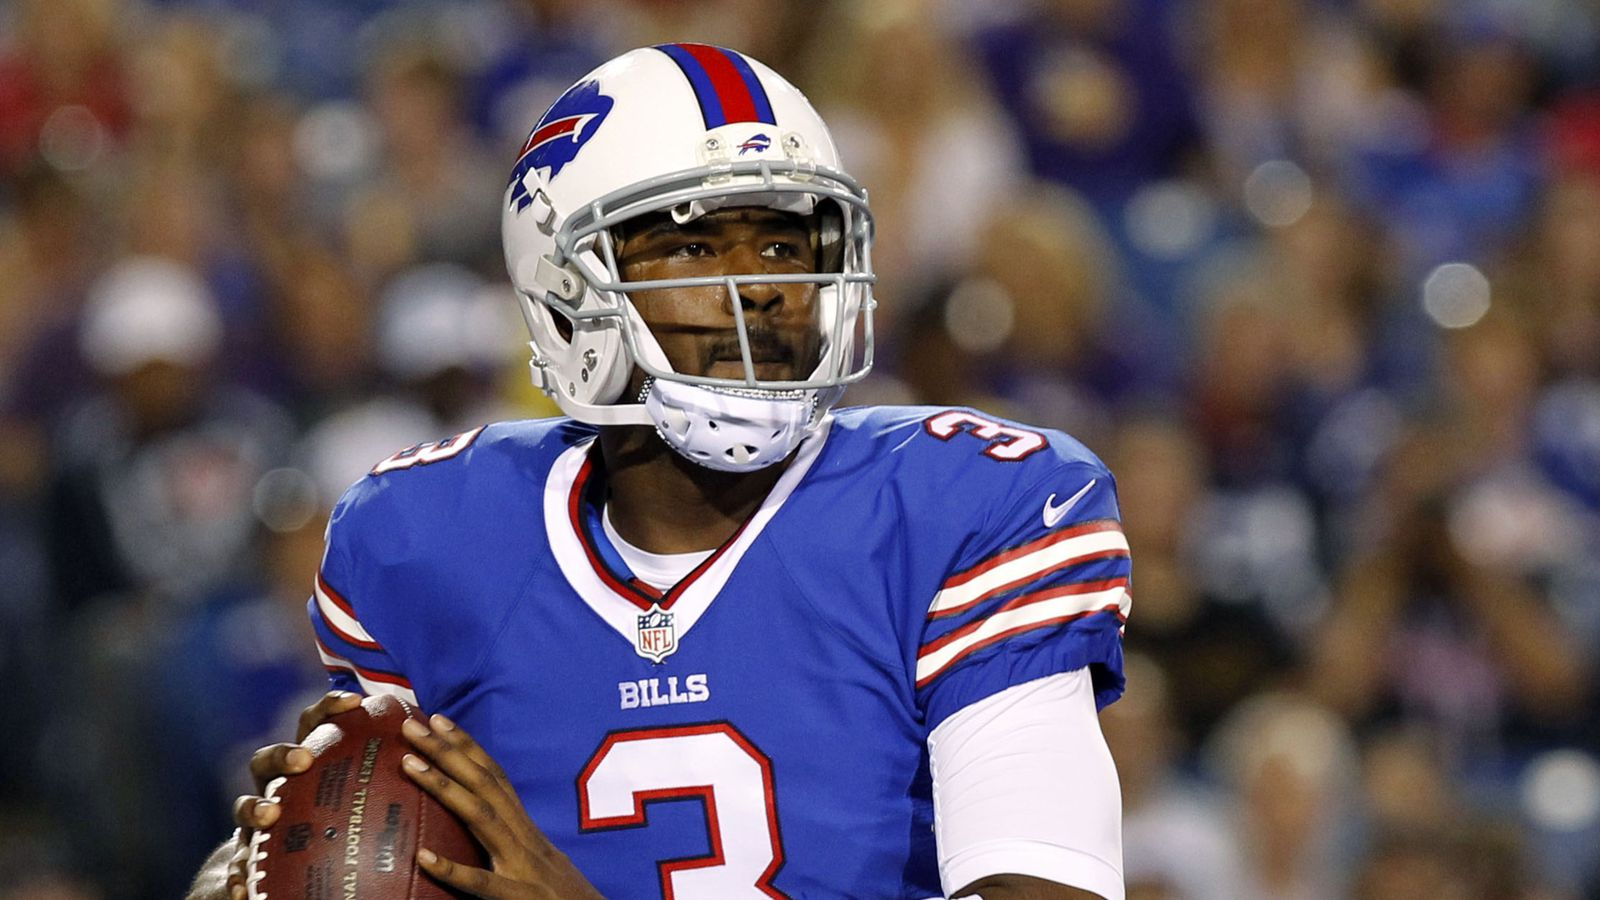 Get the latest Buffalo Bills news scores stats standings rumors and more from ESPN